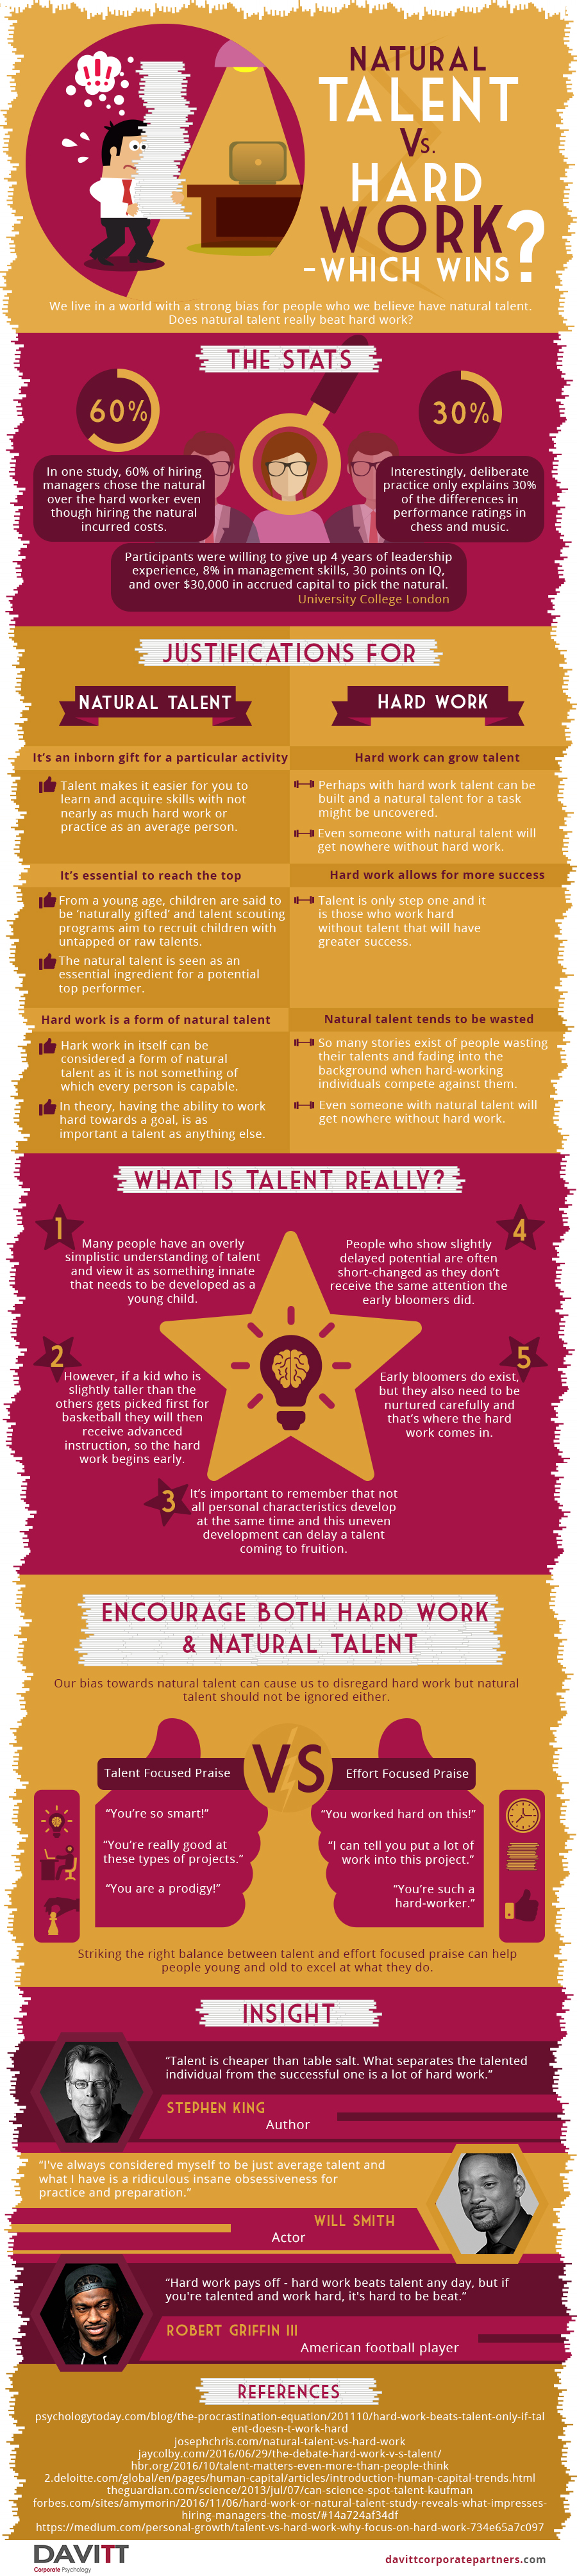 Natural Talent Vs. Hard Work: Which Wins? [Infographic]